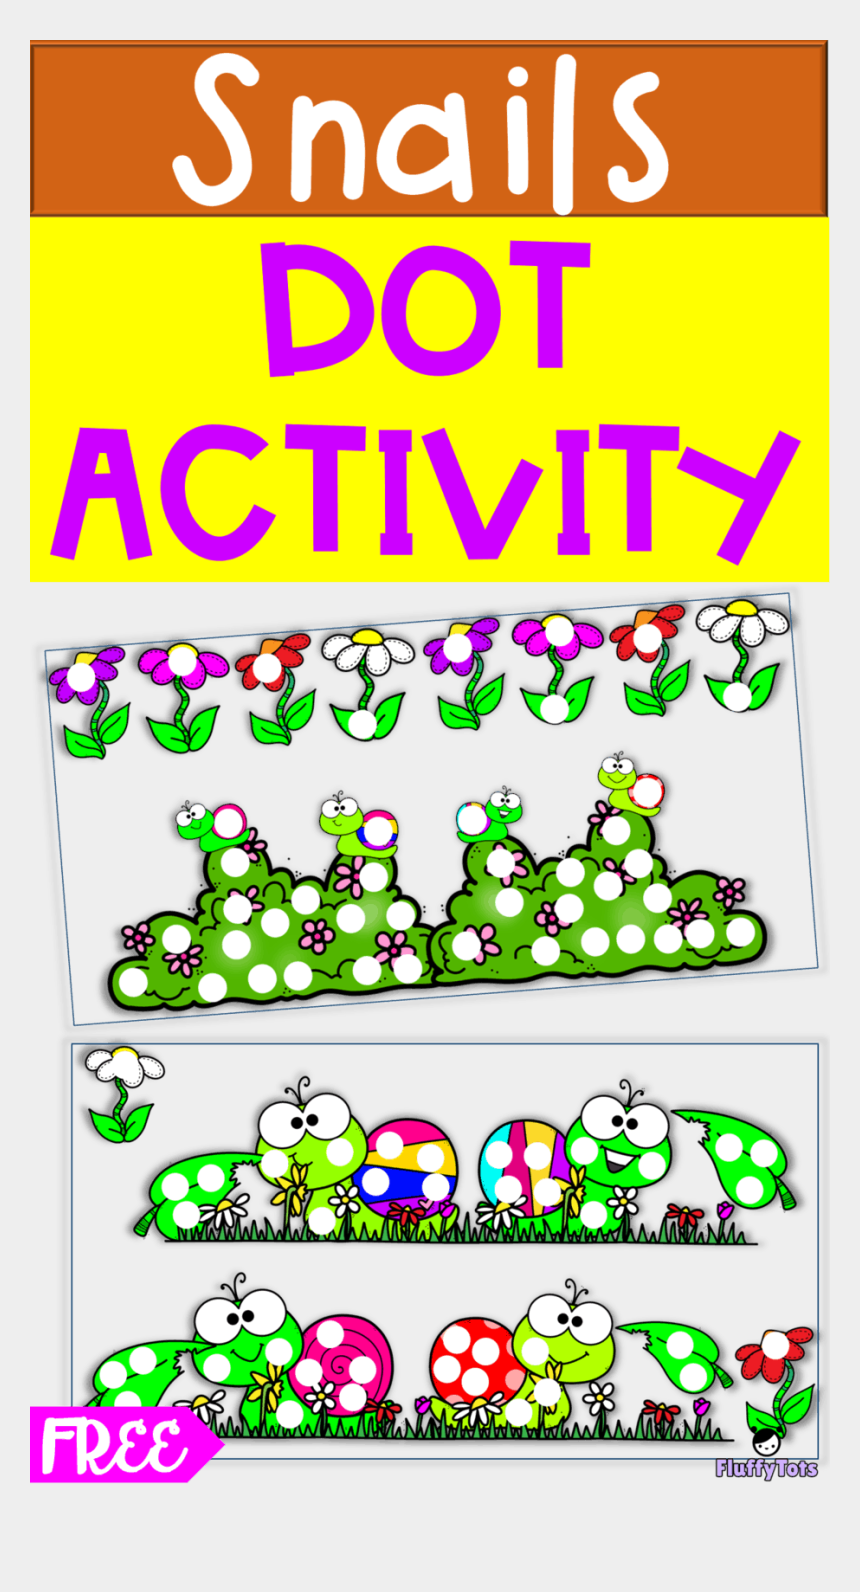 pre k clipart free, Cartoons - Spring Snails Dot Activity - Cartoon